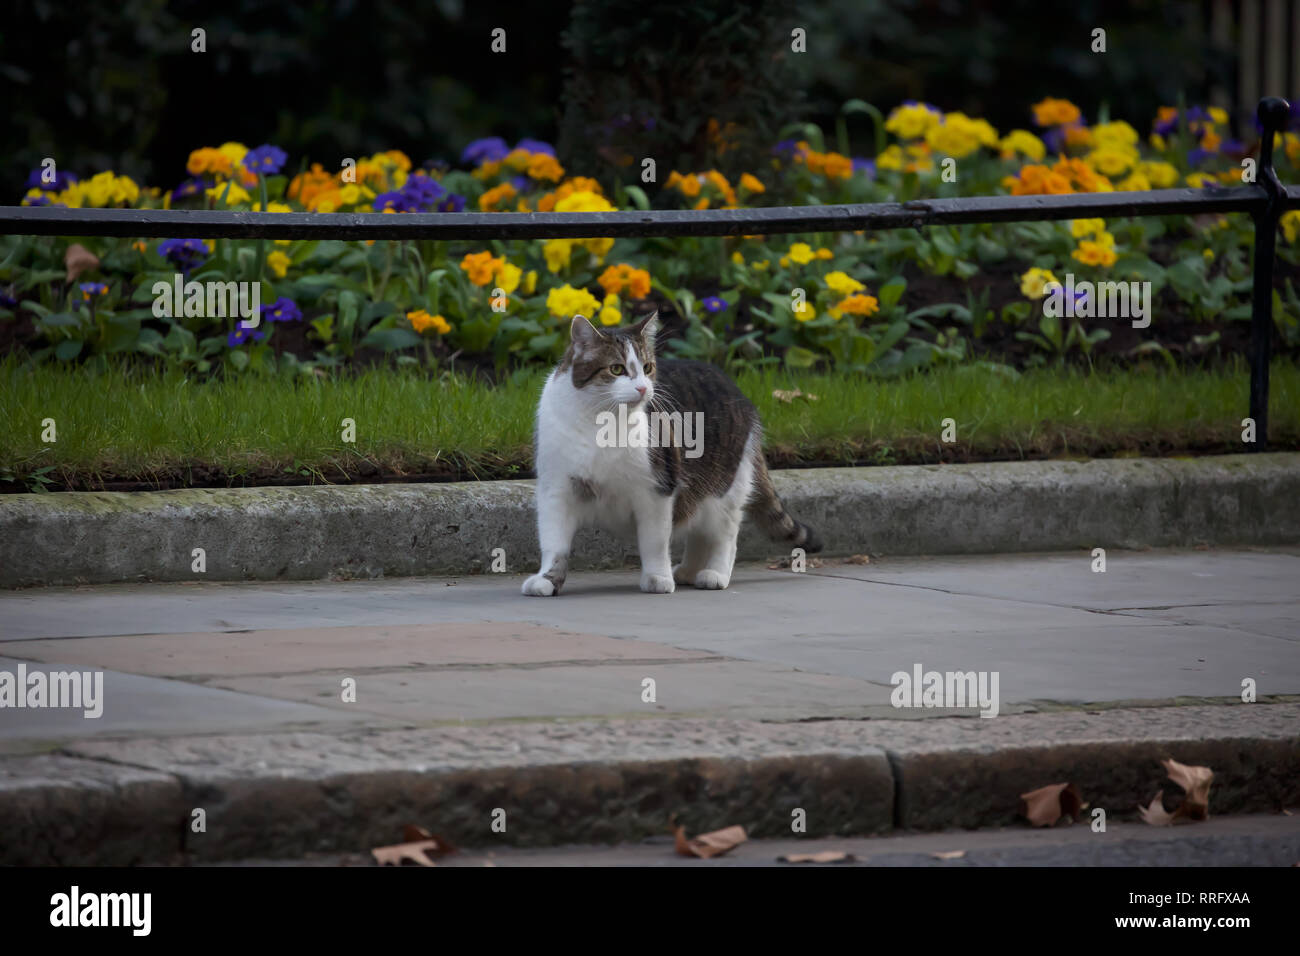 London, UK. 26th Feb, 2019. Larry, the Downing Street cat walks up the road past colourful flower beds as Ministers arrive for their weekly cabinet meeting at 10 Downing Street in London. Credit: Keith Larby/Alamy Live News Stock Photo